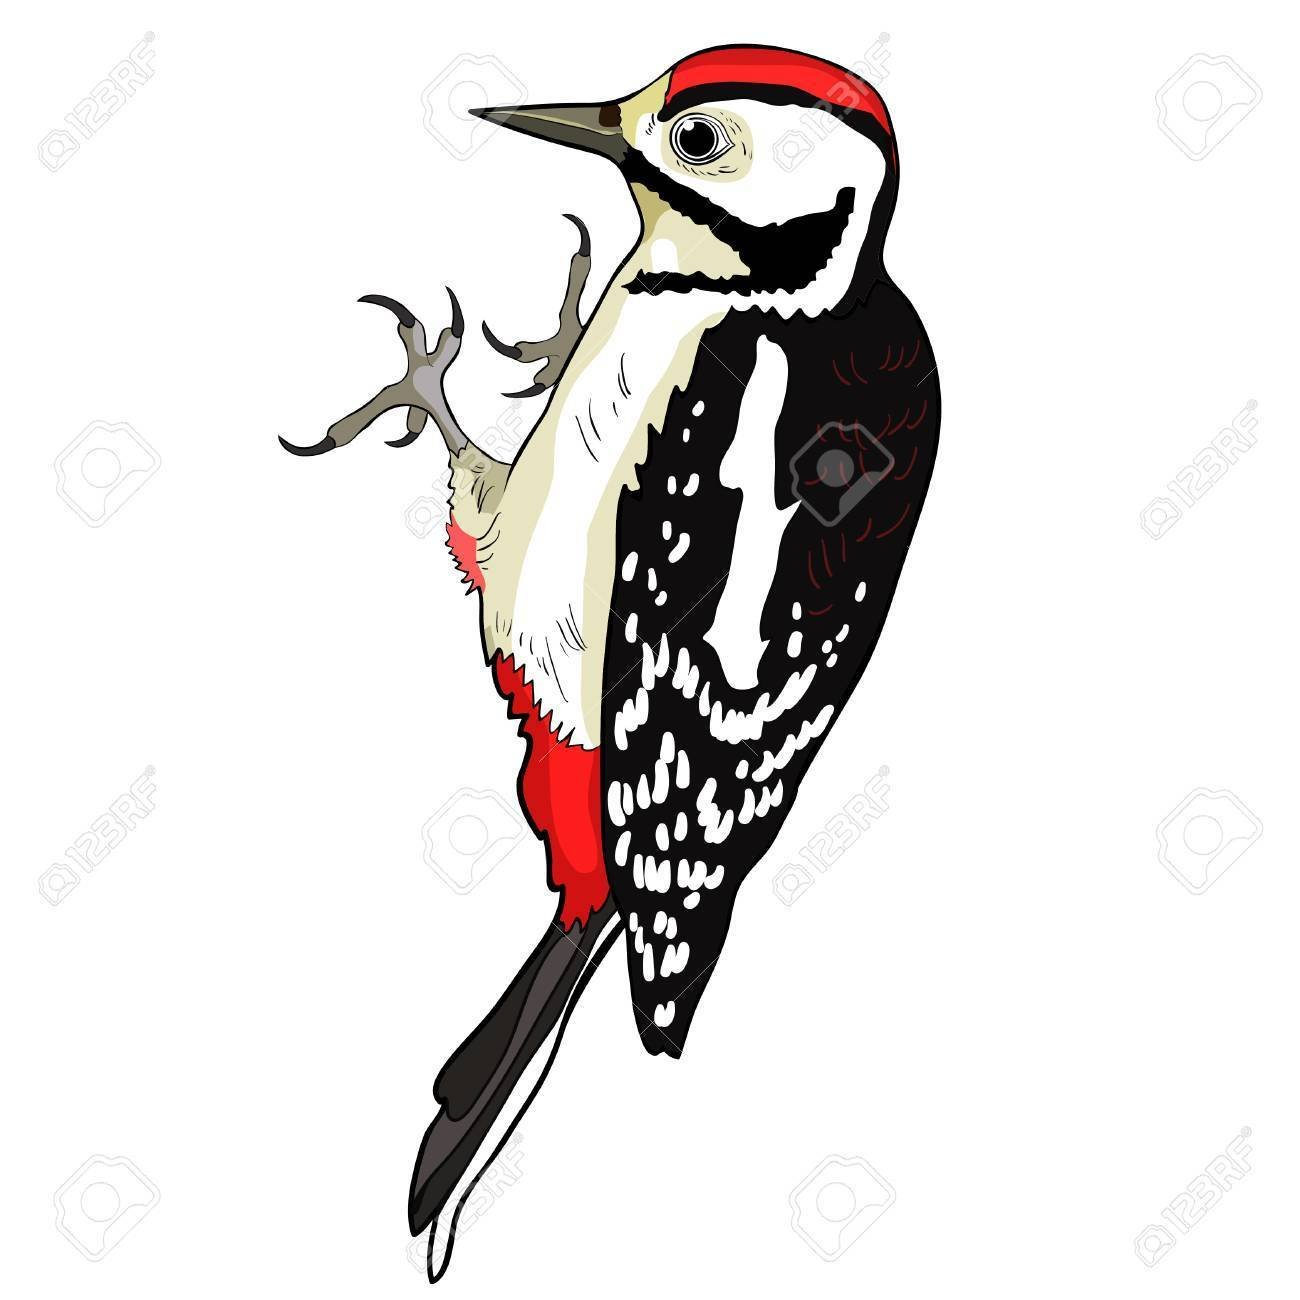 Image result for woodpeckers clipart